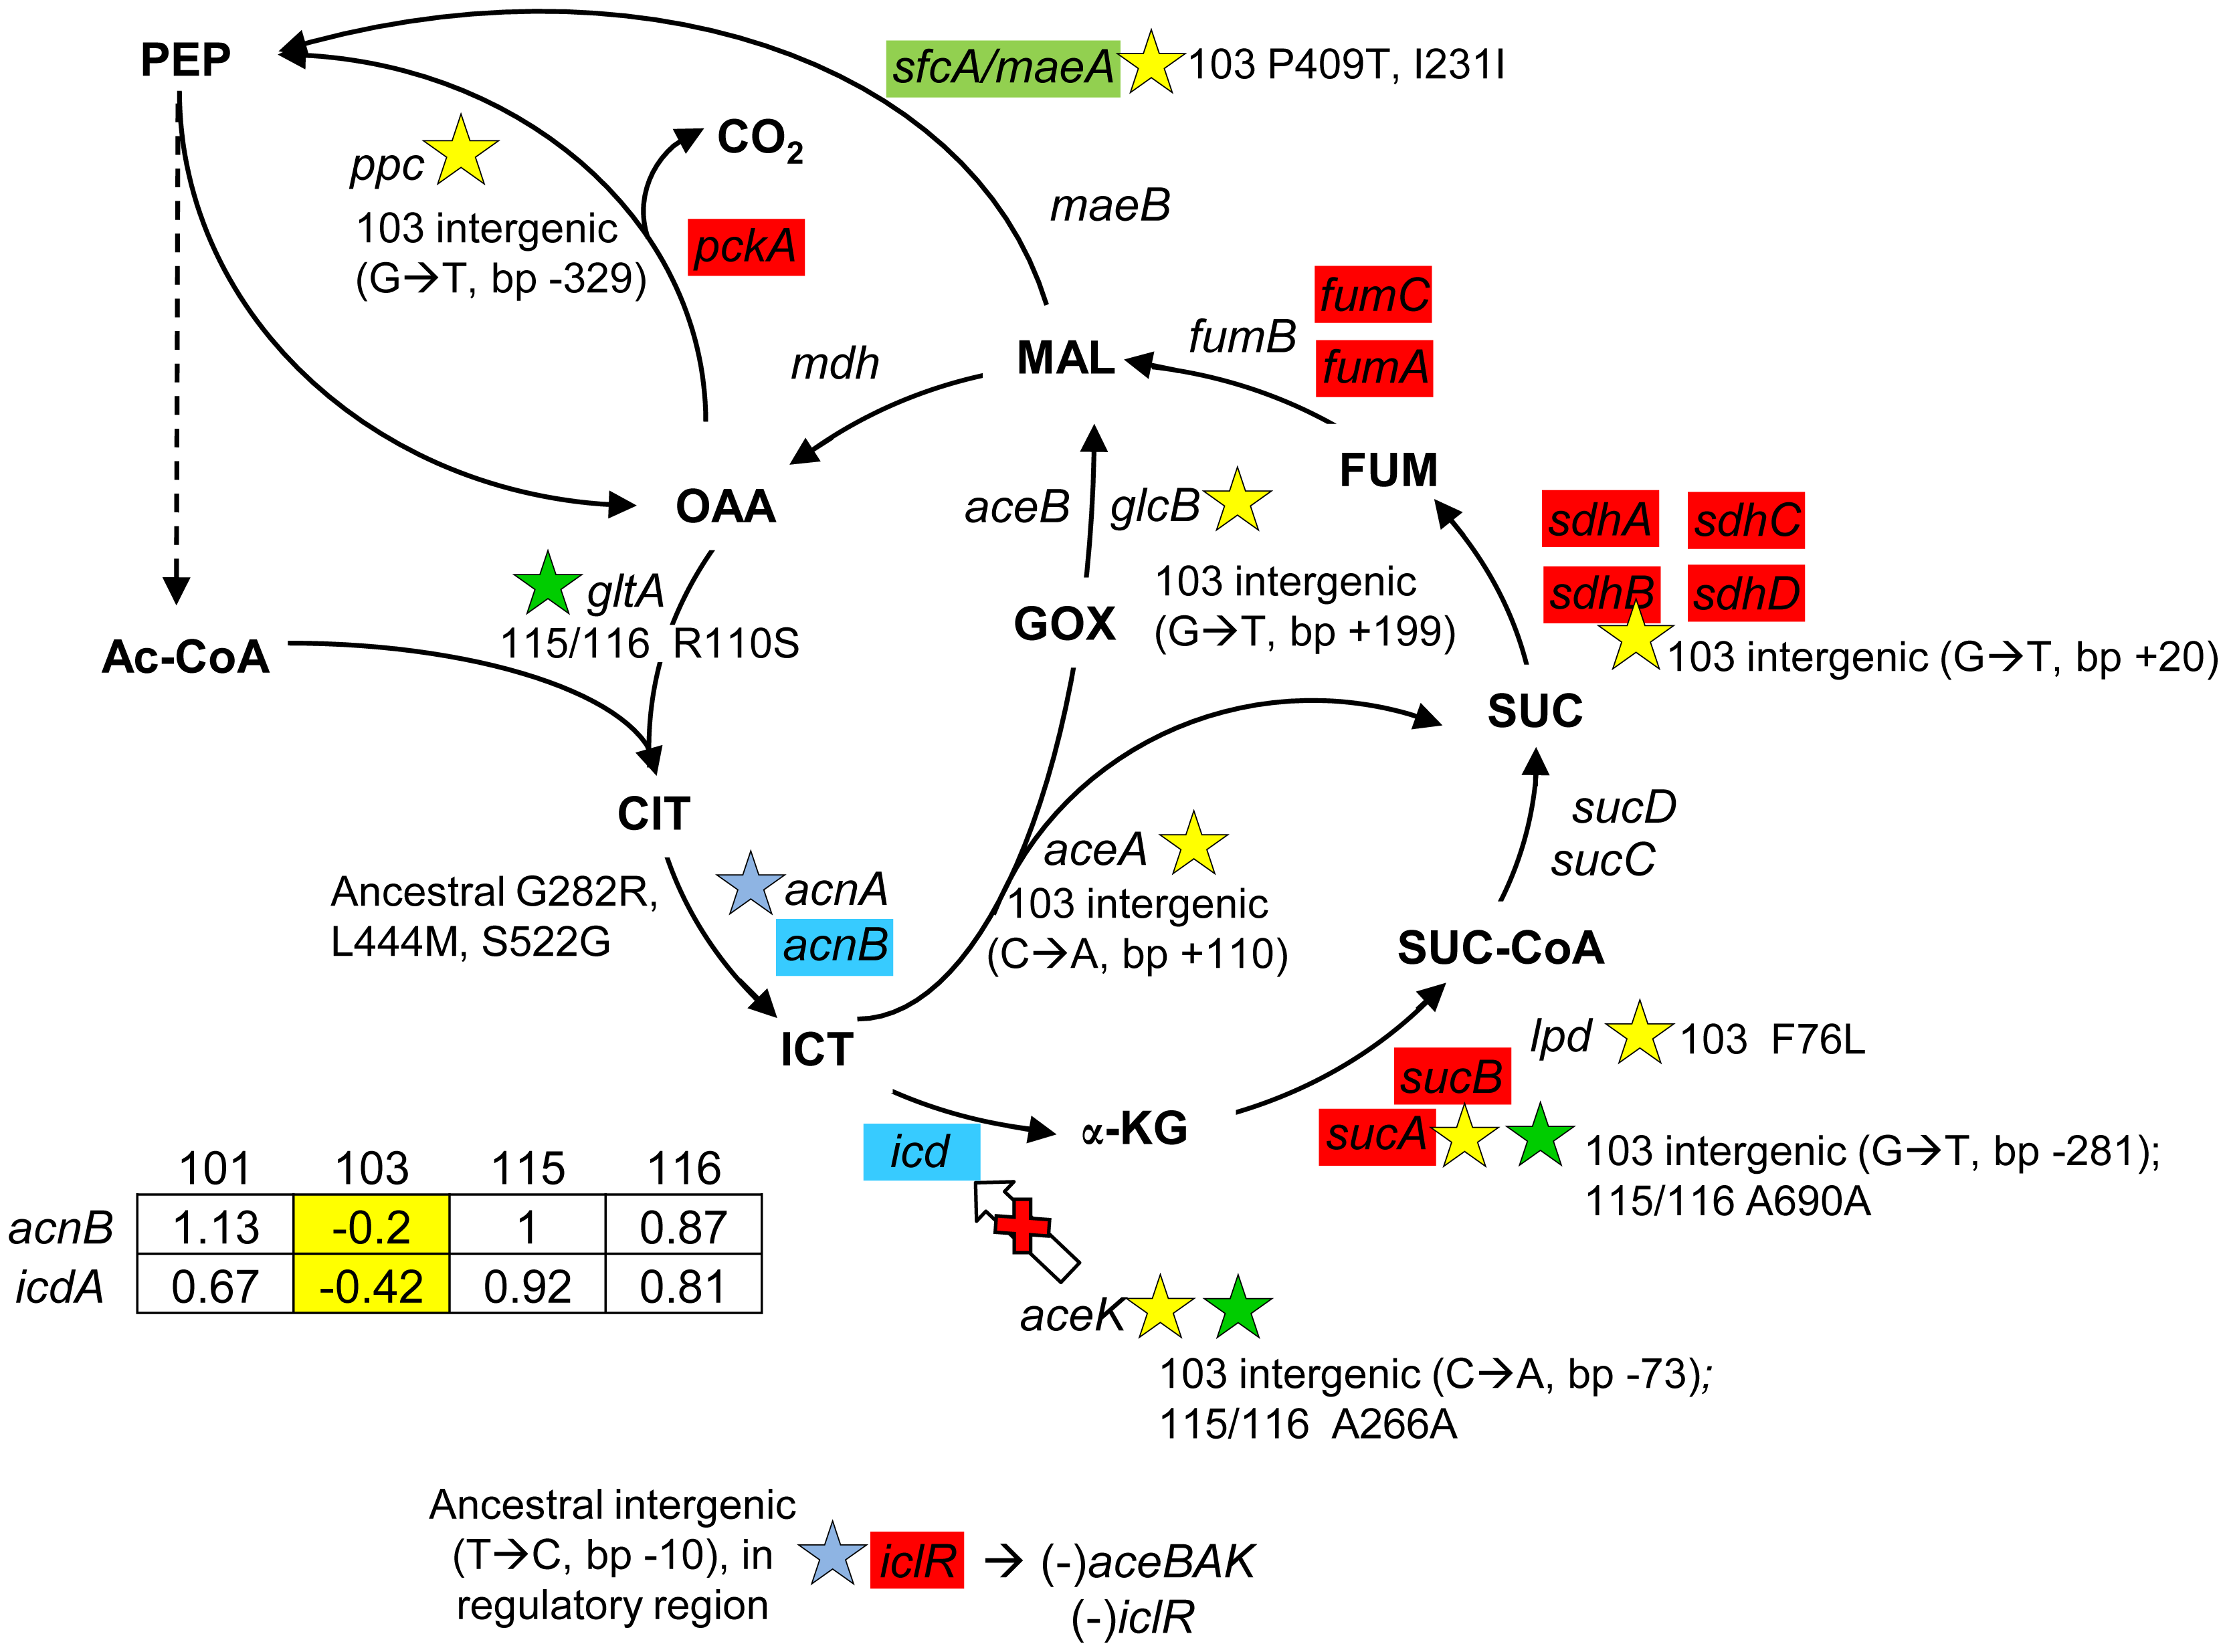 Gene expression and SNPs among loci in the TCA cycle and glyoxylate shunt.